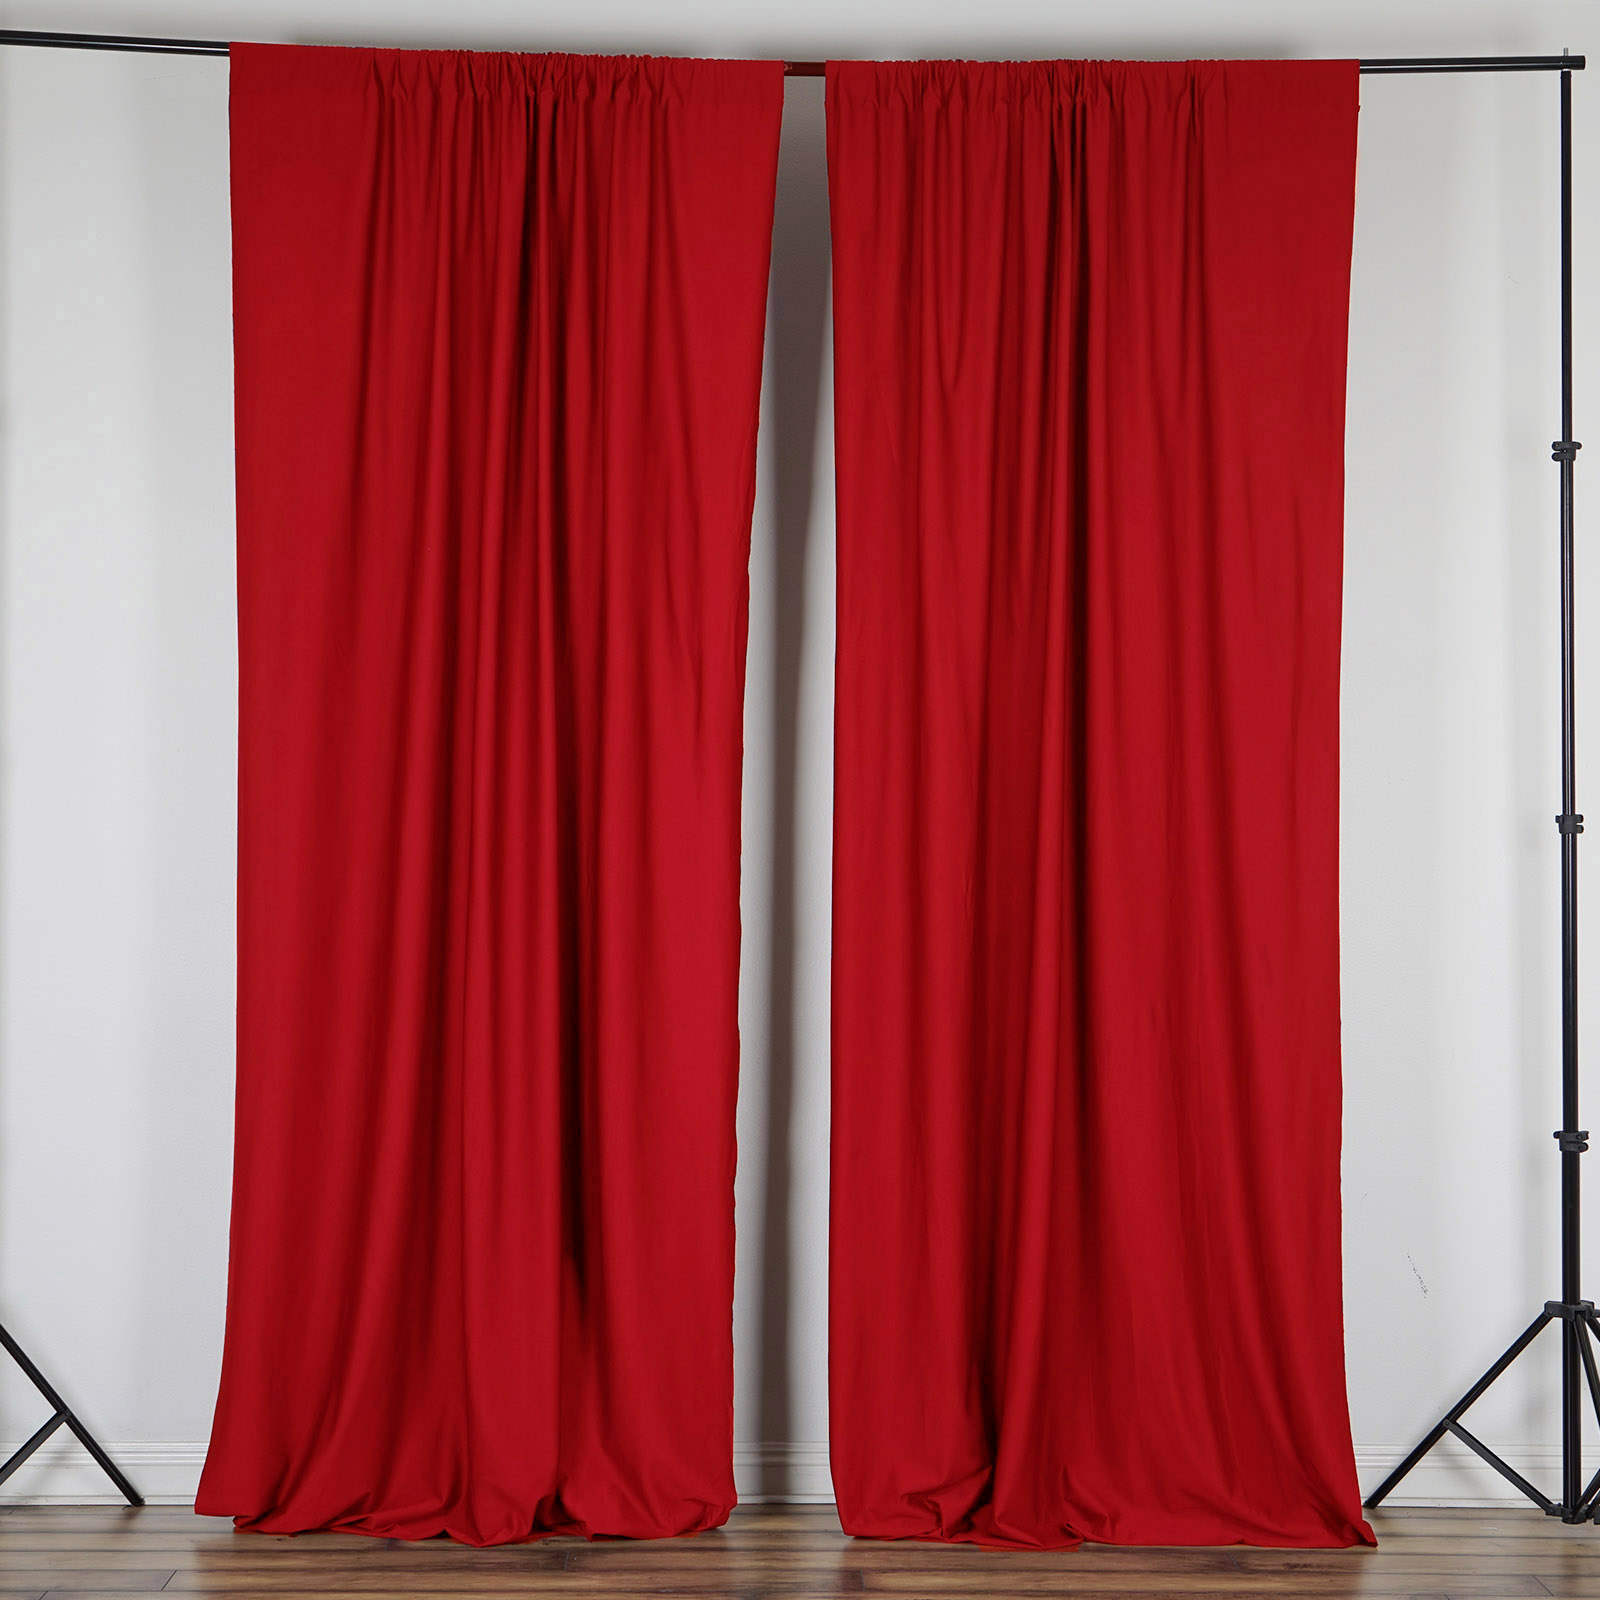 Backdrop curtain 2